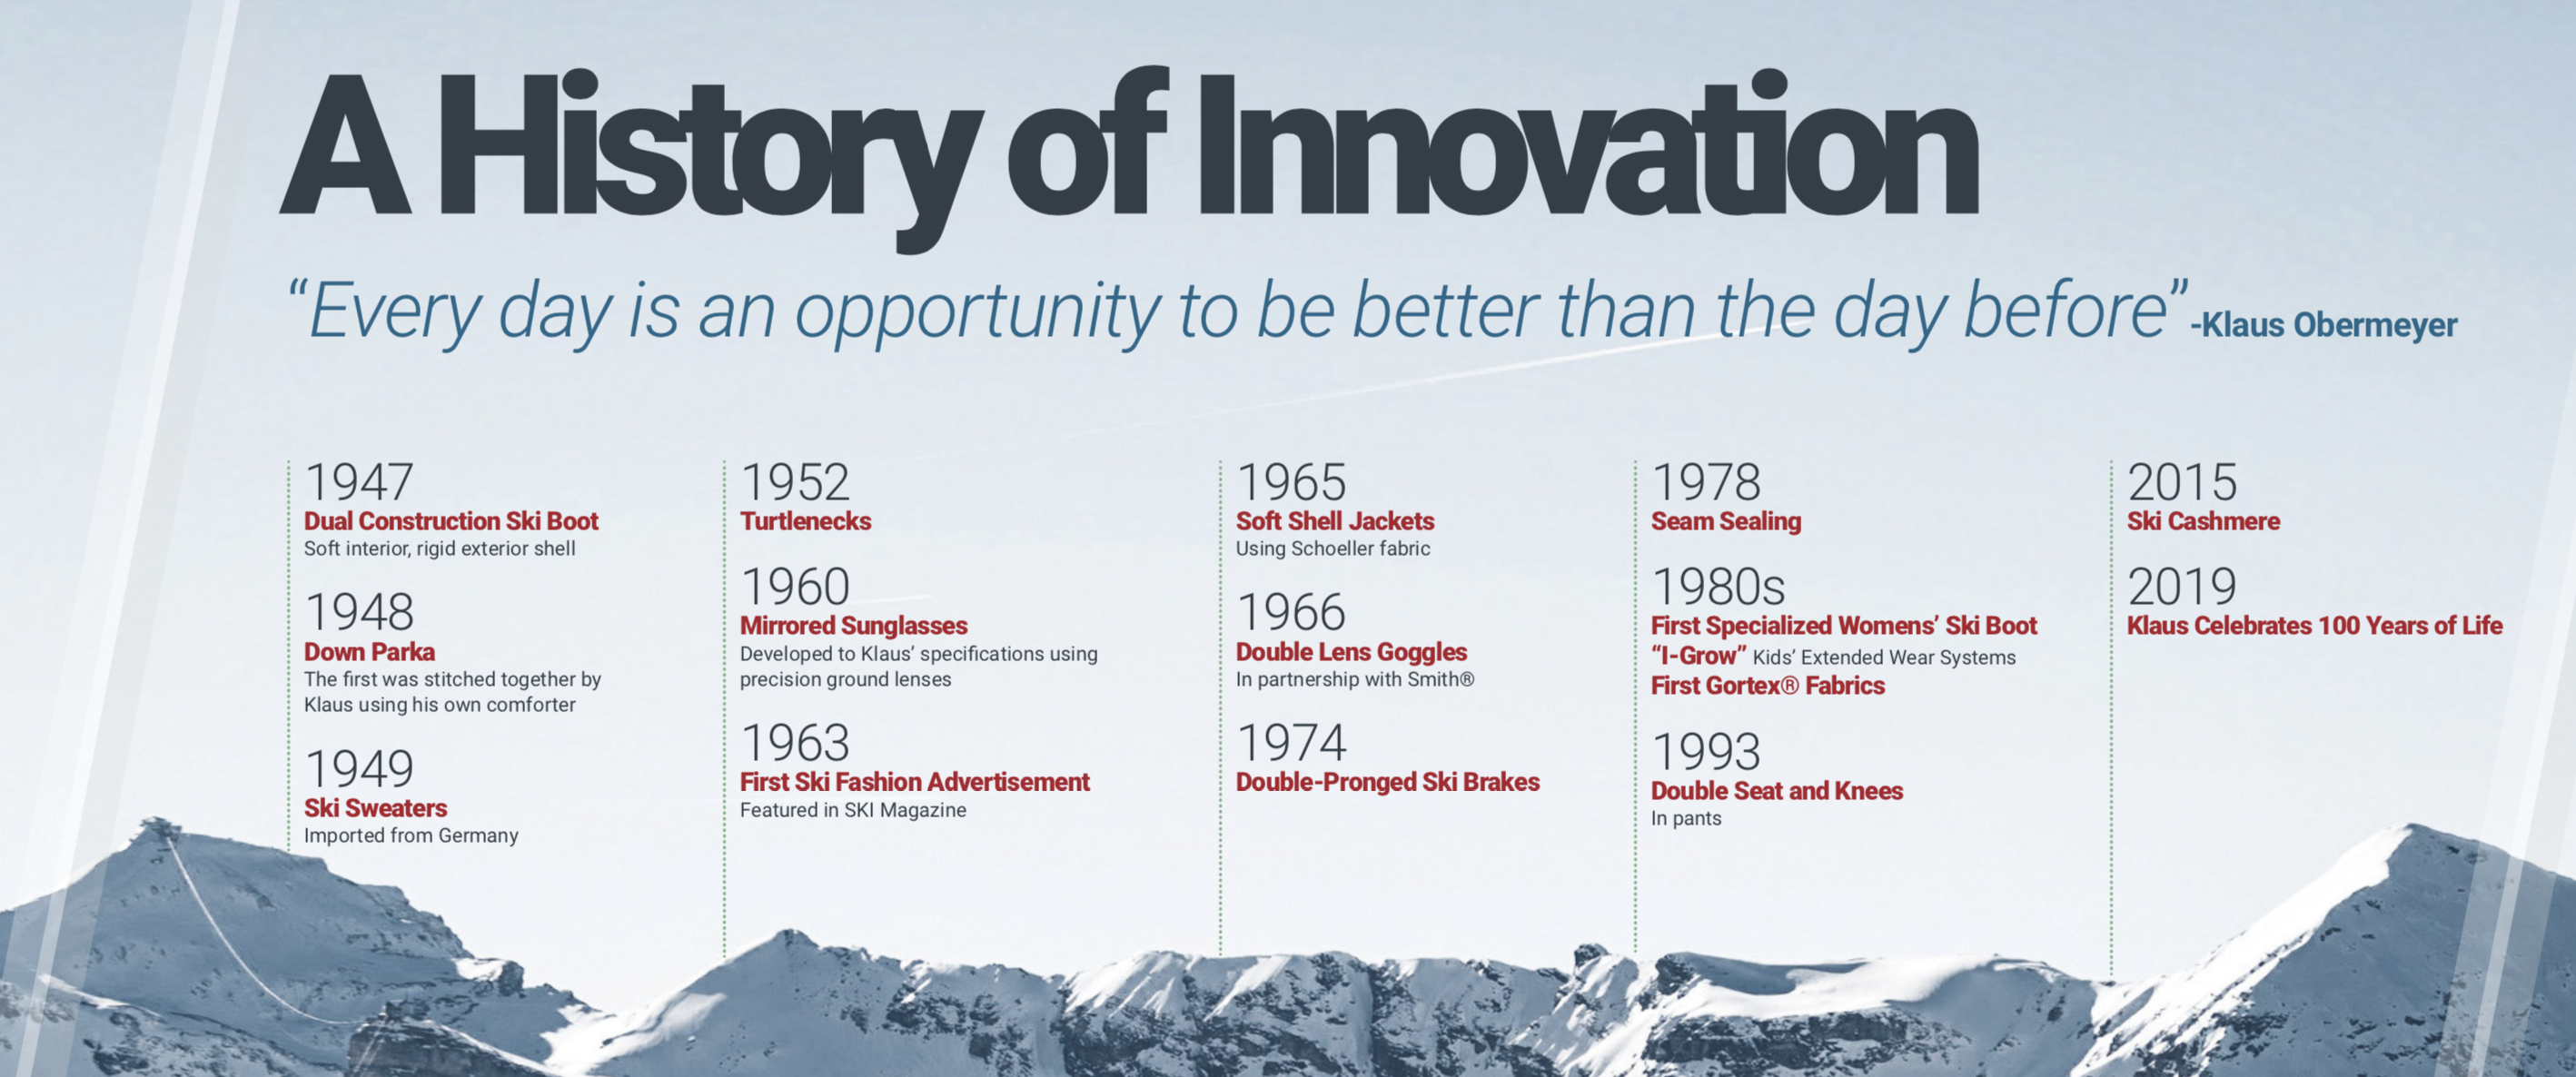 timeline of obermeyer innovations to the ski industry